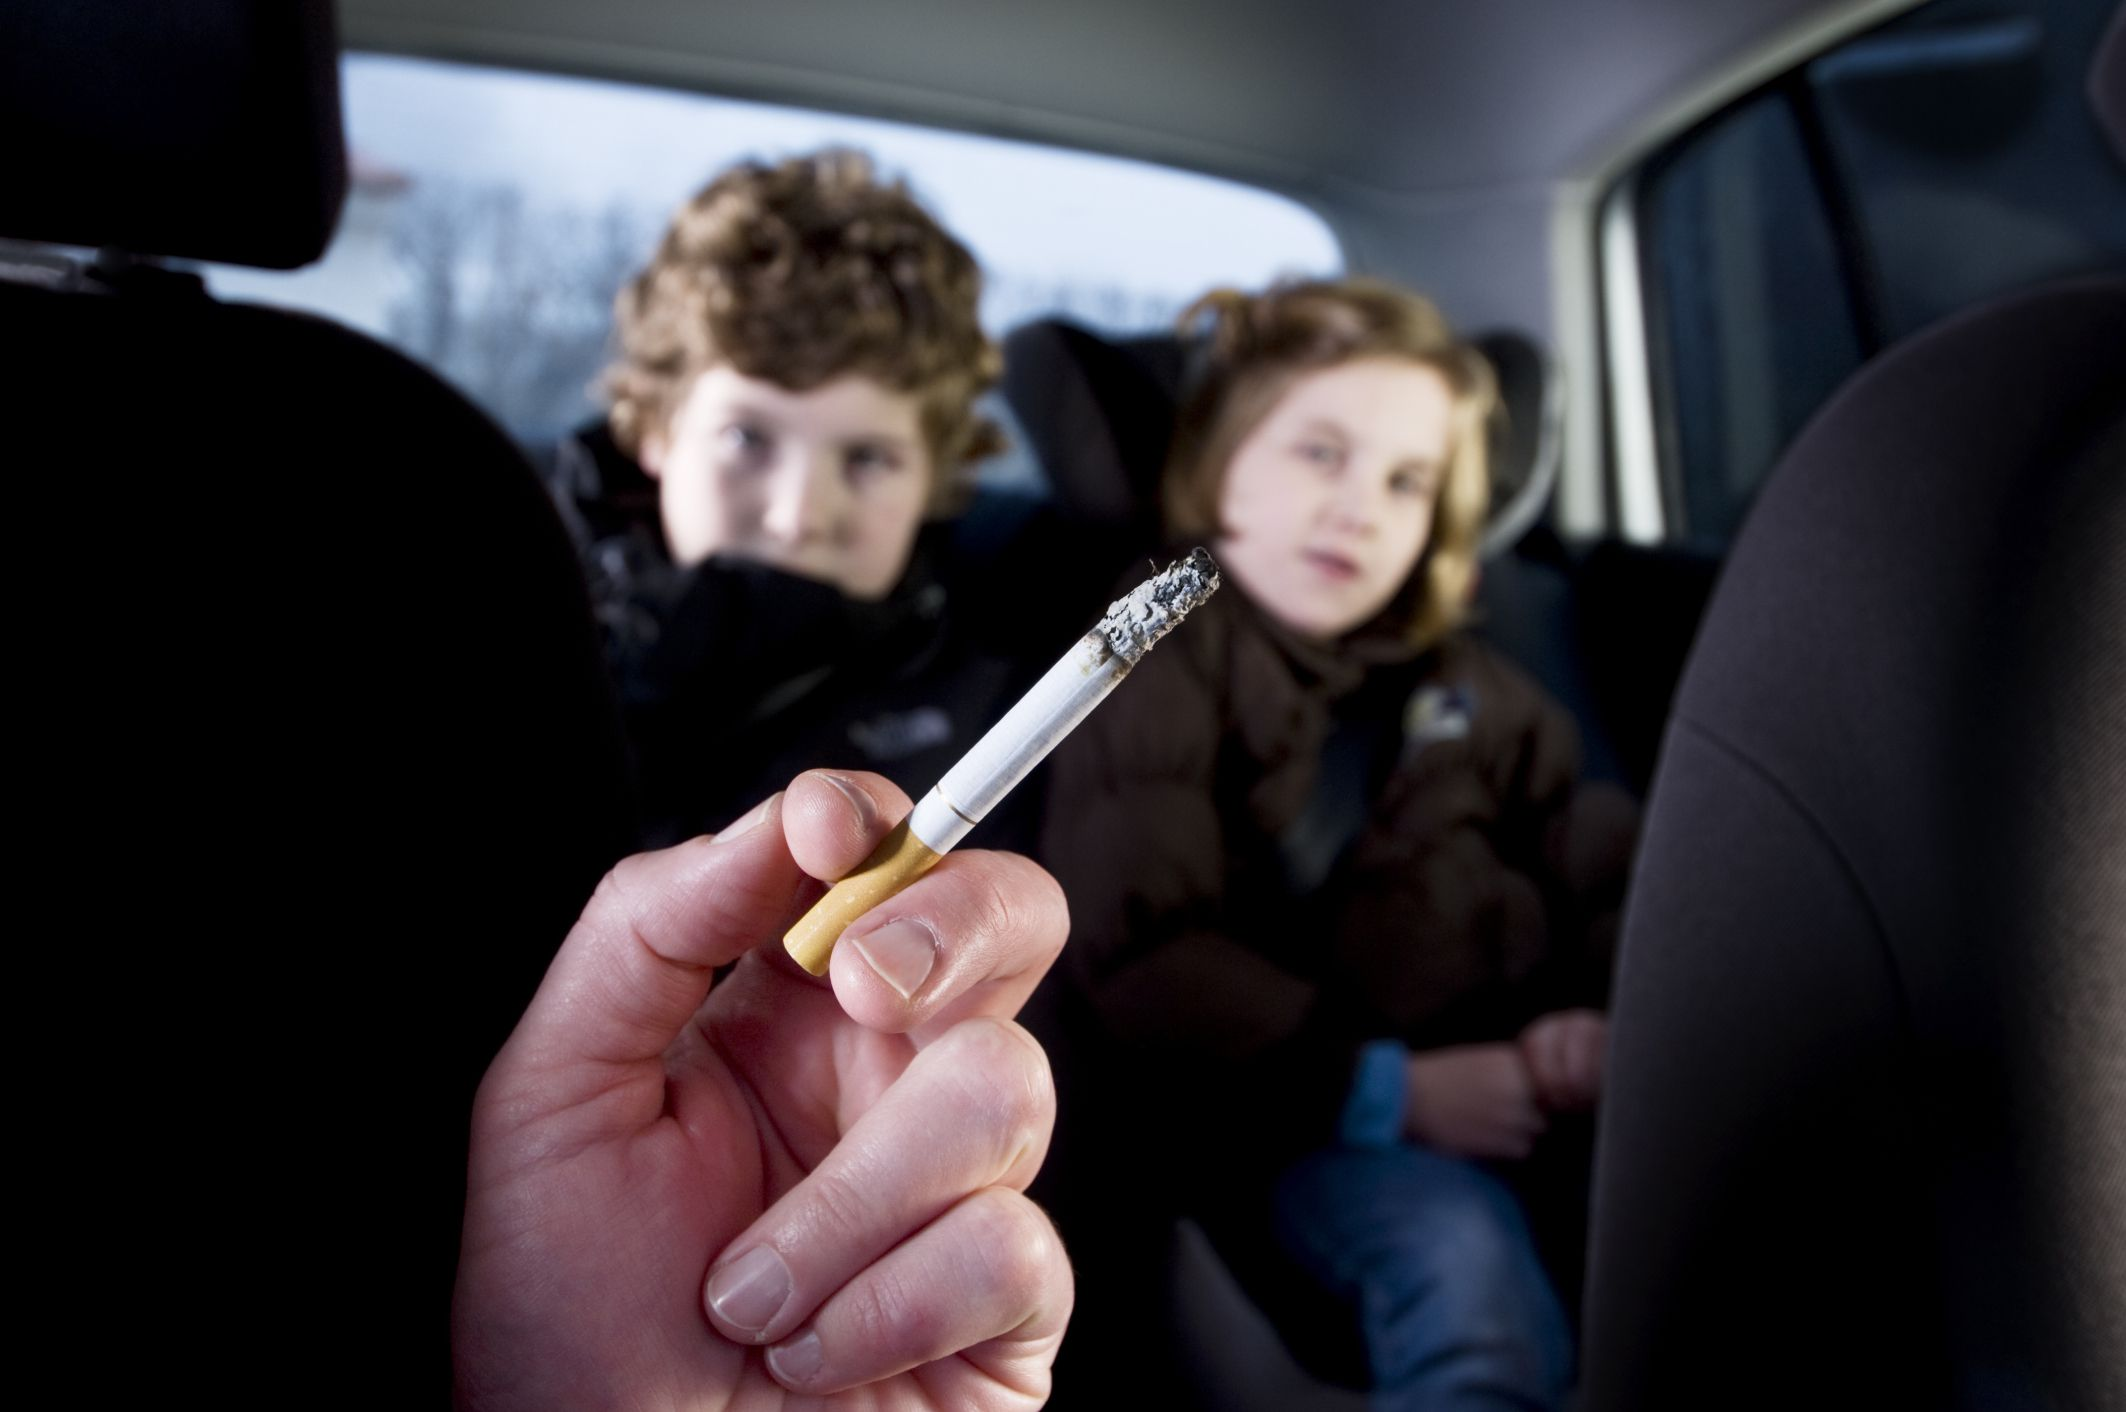 How To Remove Smoke And Cigarette Smells From A Car